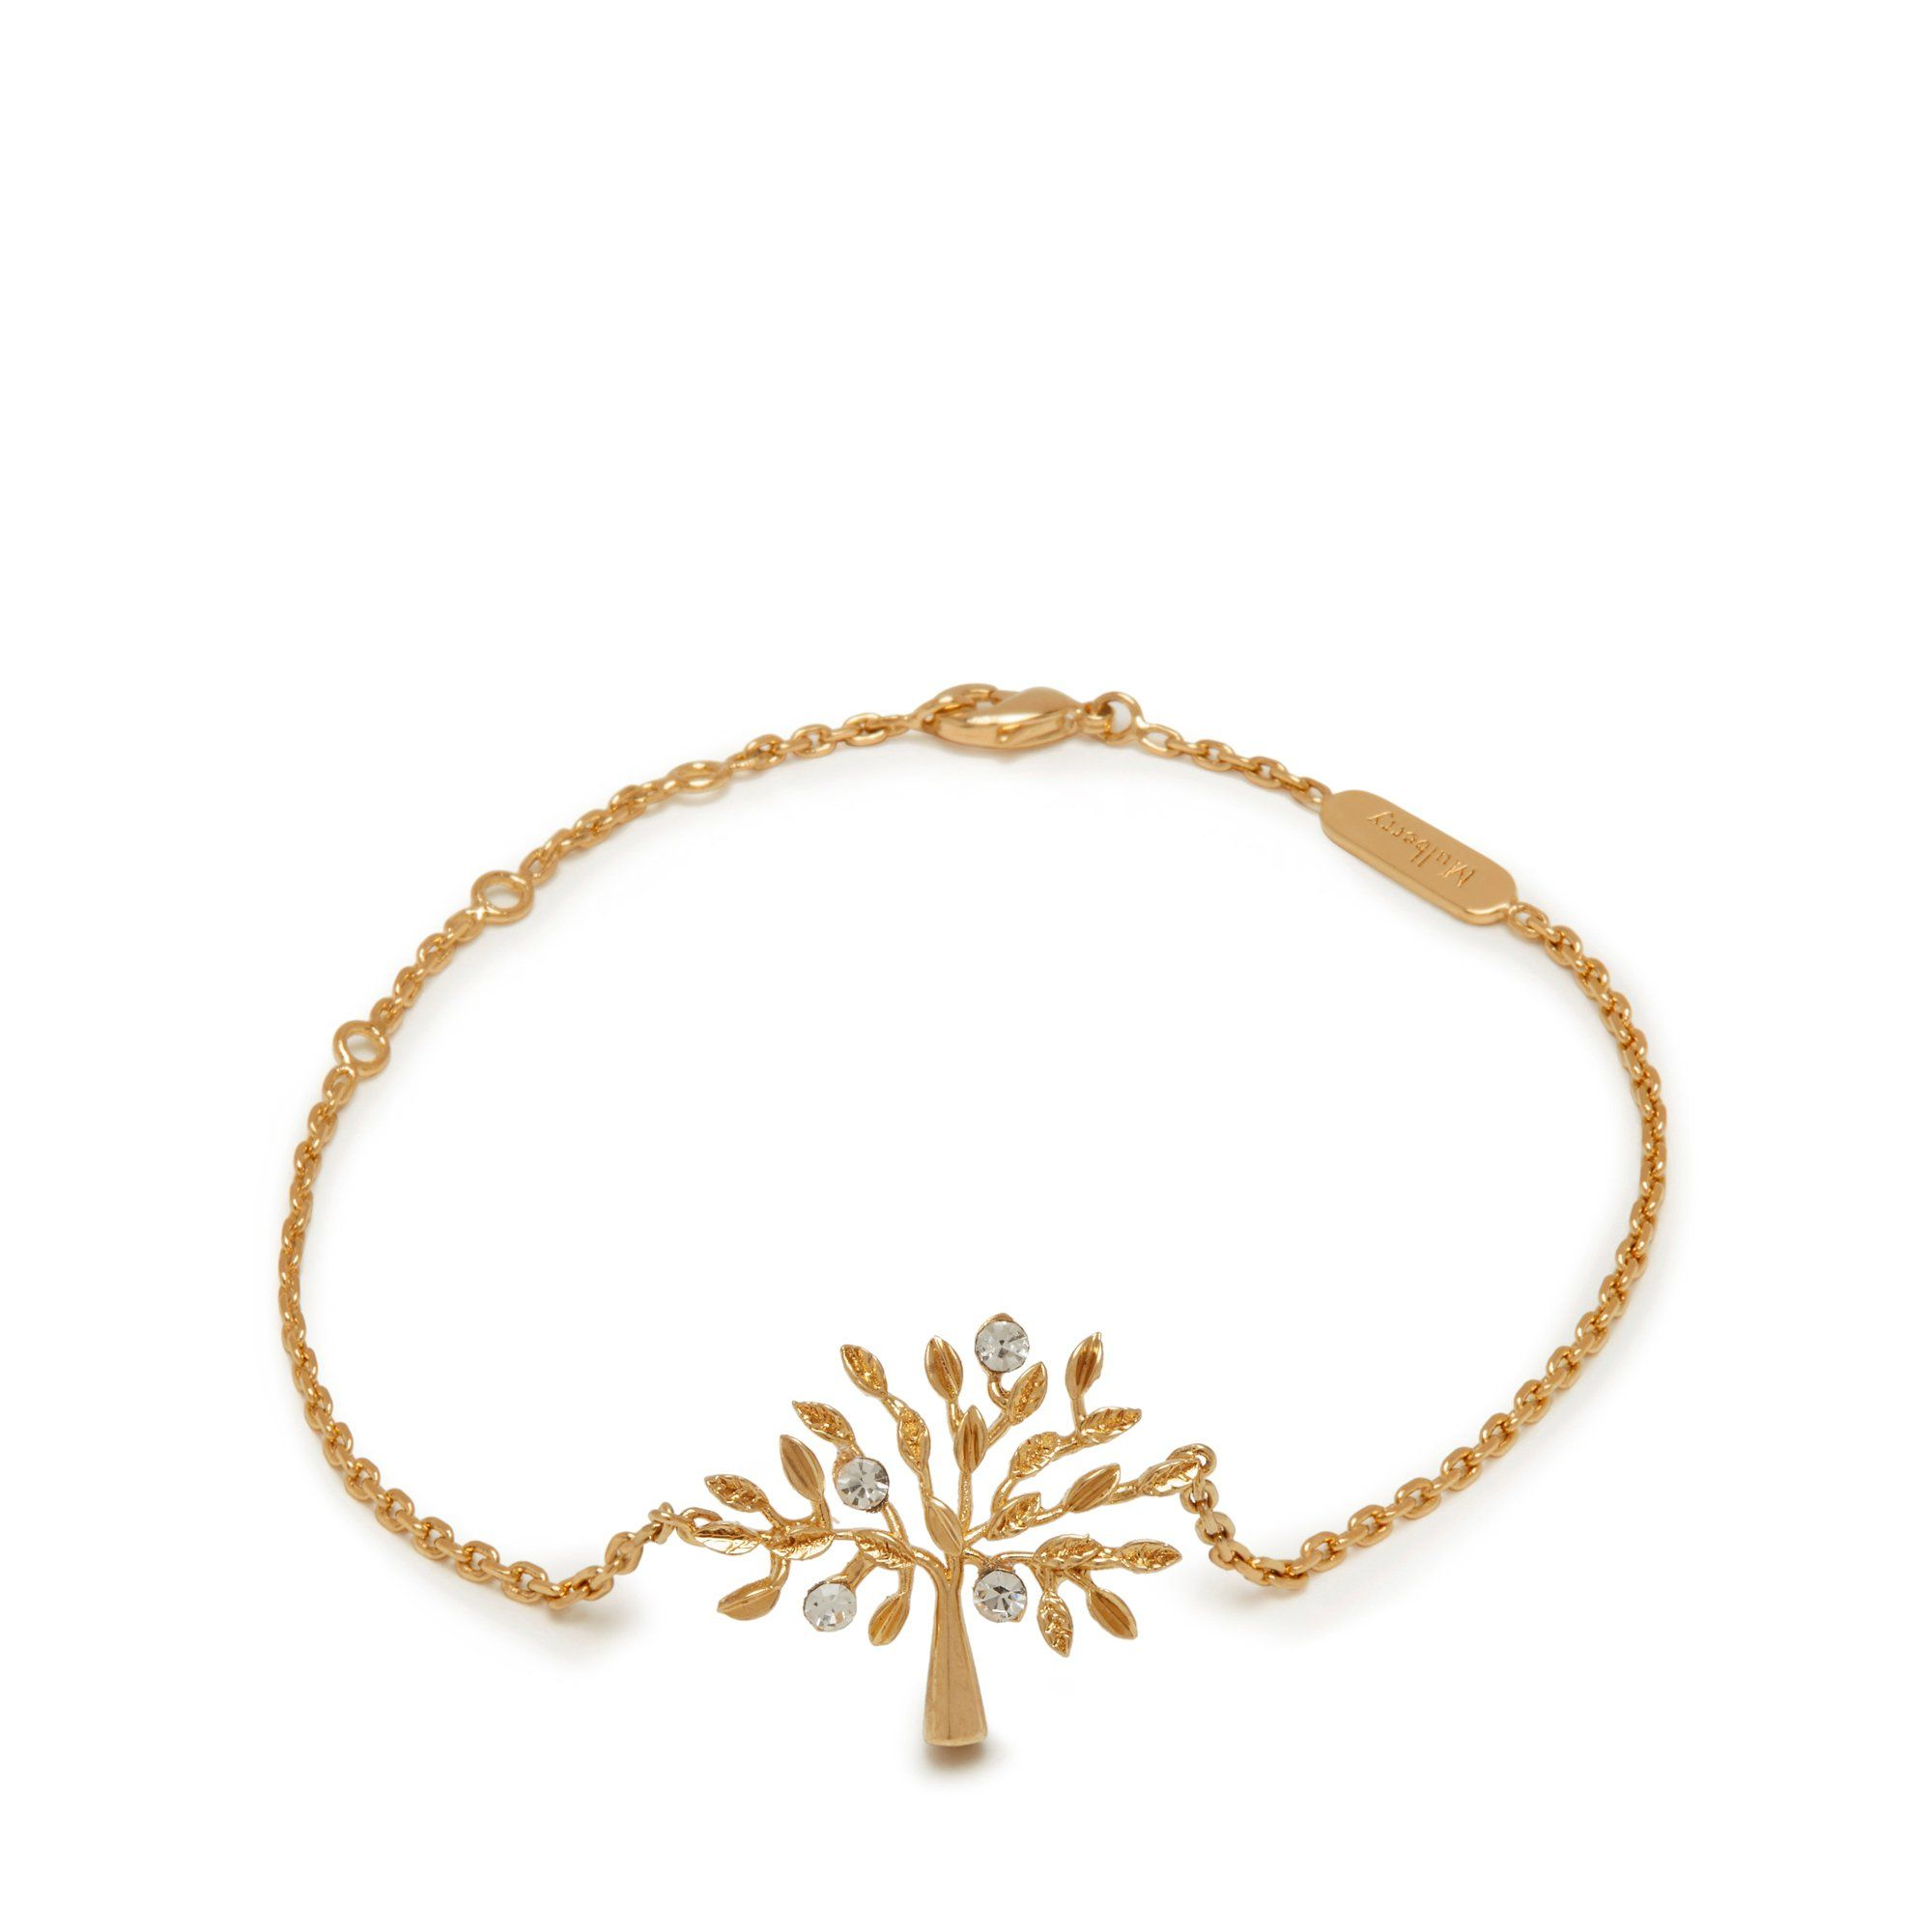 Mulberry Has A New Jewellery Range, And You'll Want It All